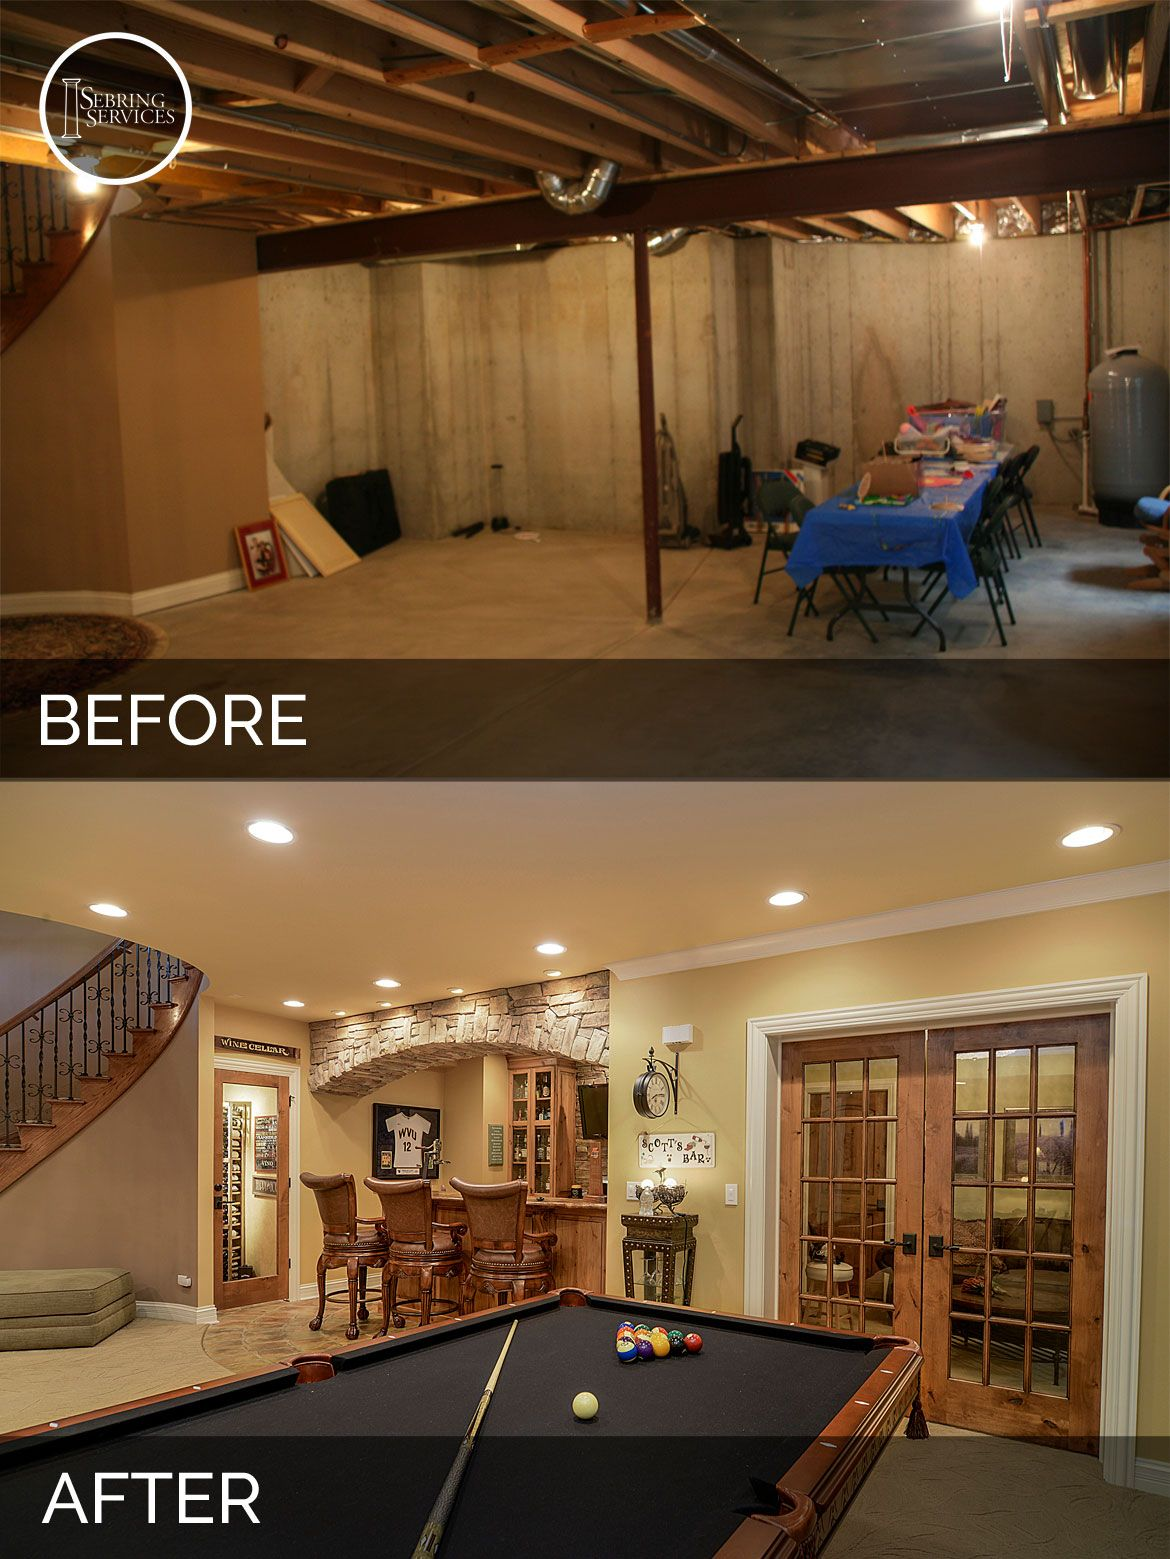 Before And After Diy Kitchen Renovation: Brian & Danica's Basement Before & After Pictures